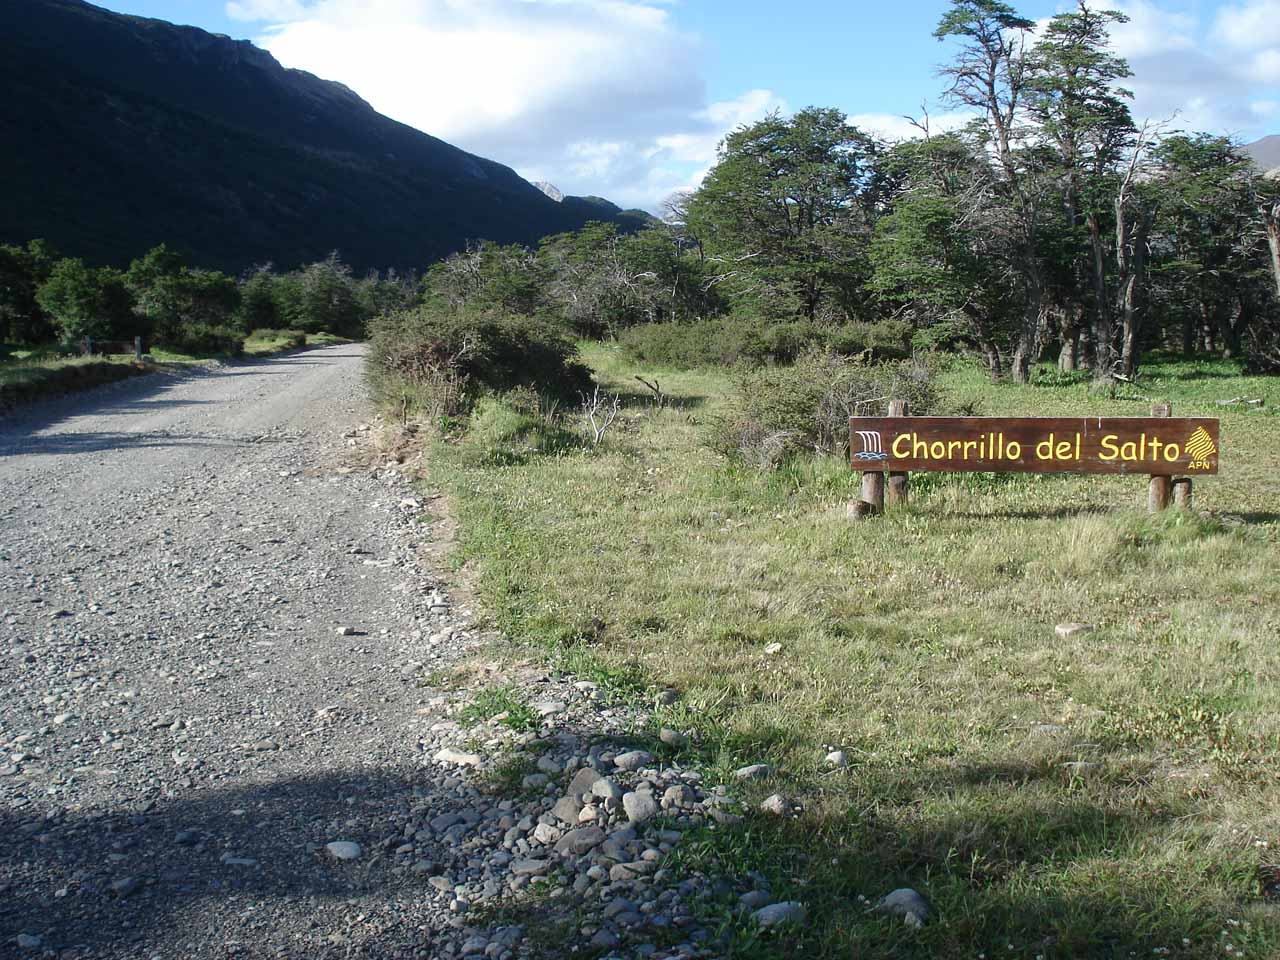 Continuing on the unpaved road towards Chorrillo del Salto